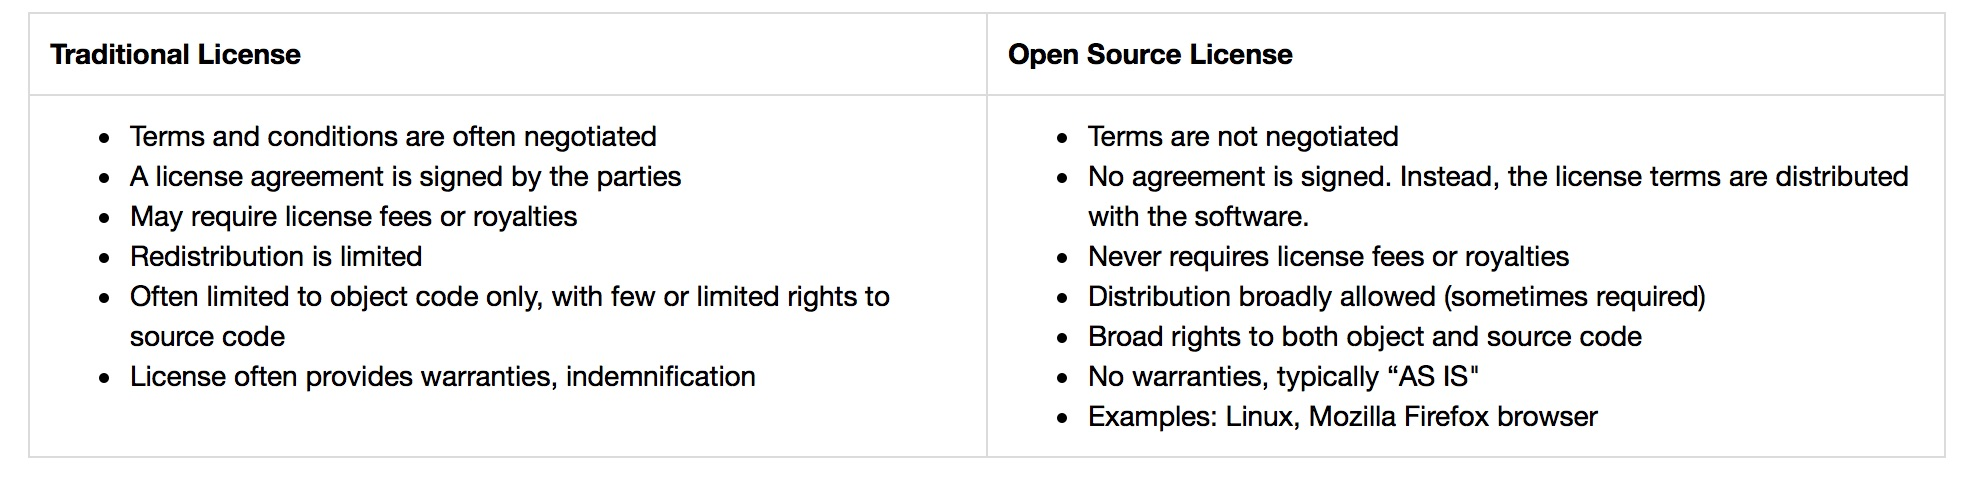 Open Source Software A Legal Guide Lawgives